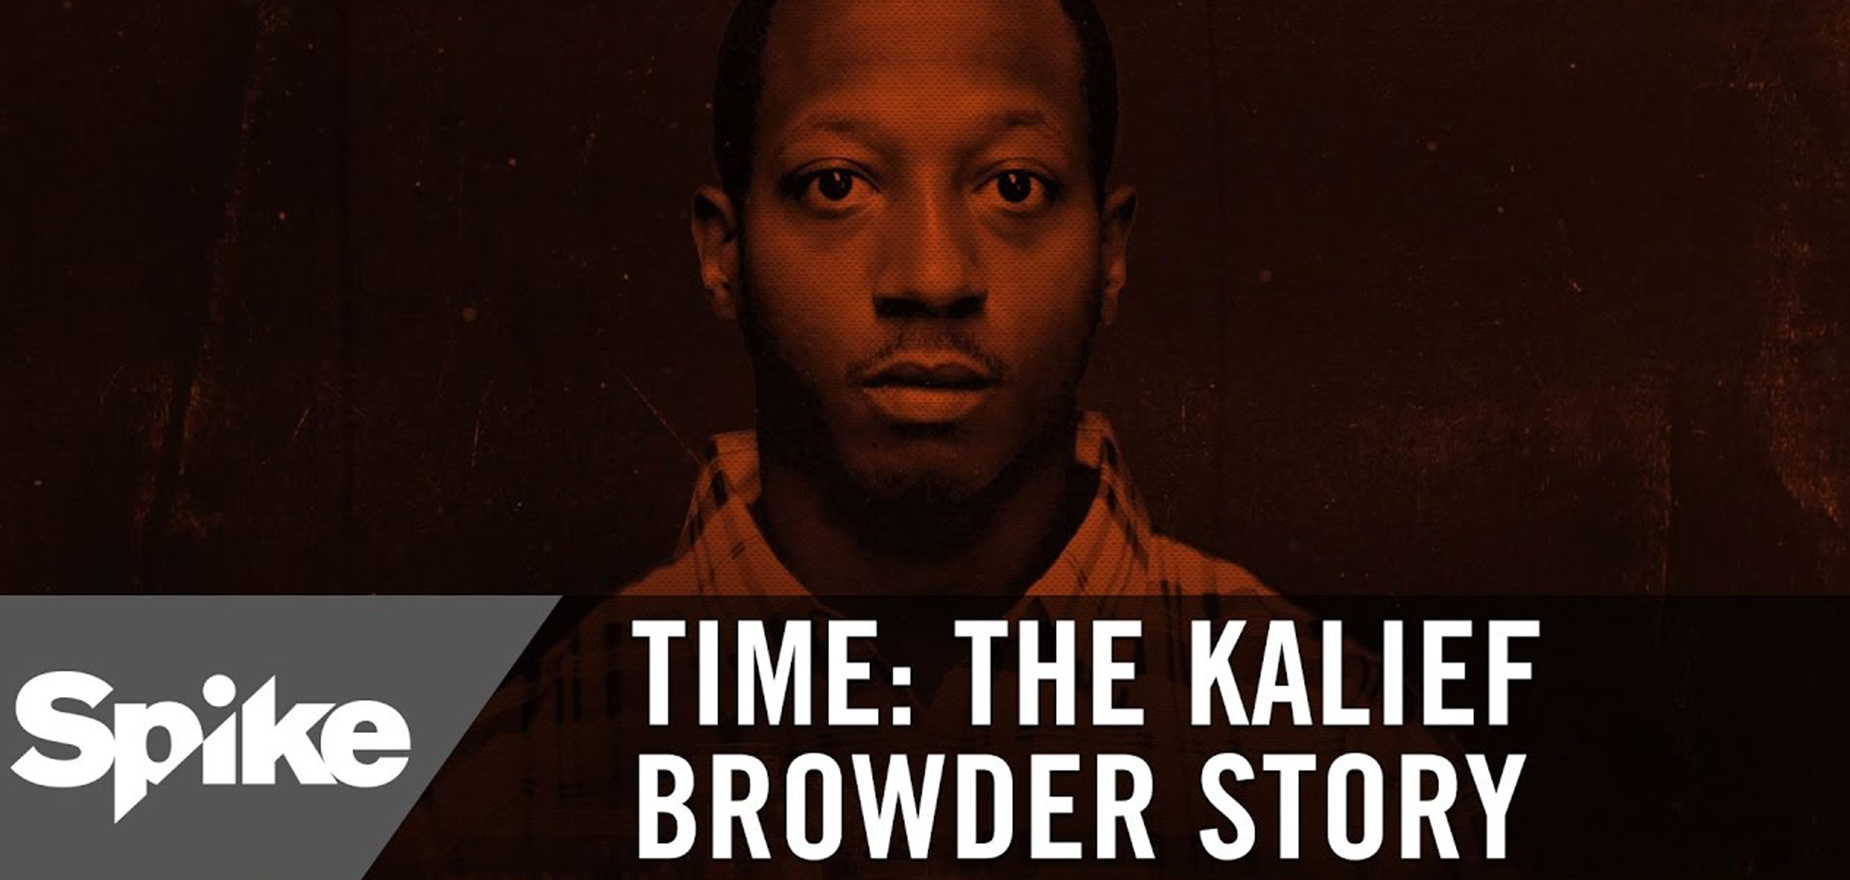 TIME: The Kalief Browder Story - Spike TV, The Cinemart, Roc Nation